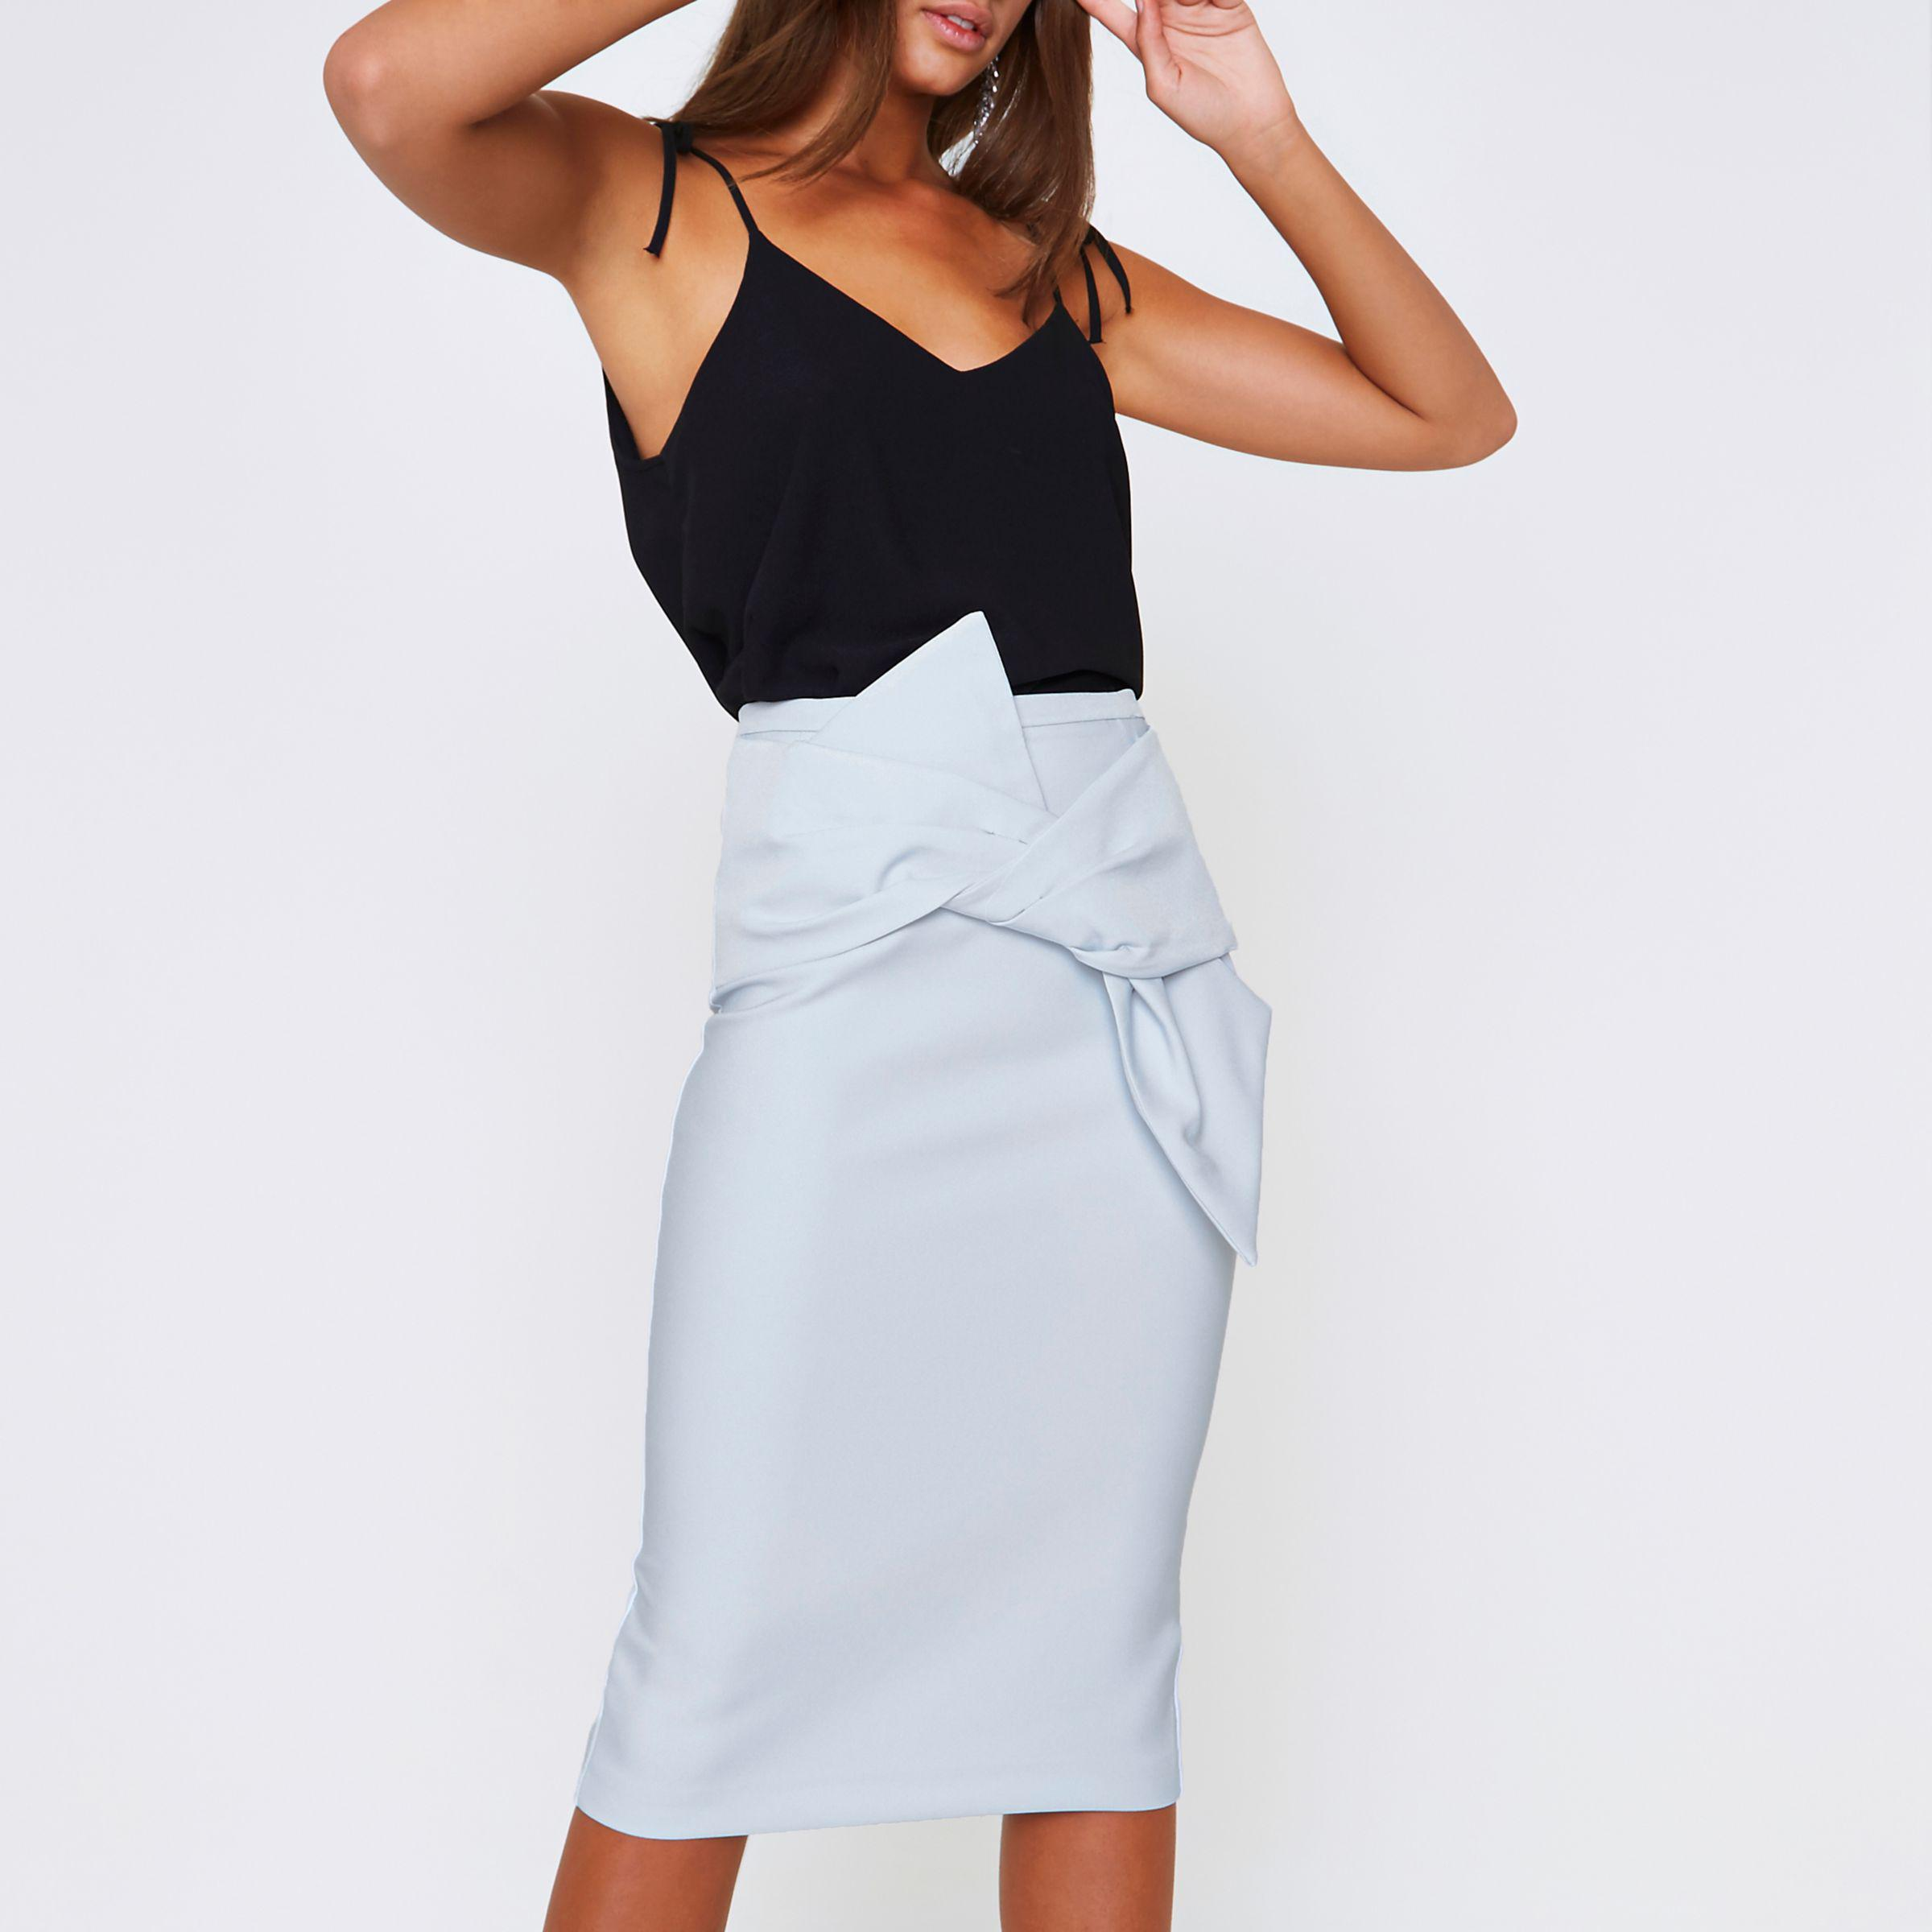 Lyst - River Island Blue Bow Front Pencil Skirt in Blue a93e1a8dac0